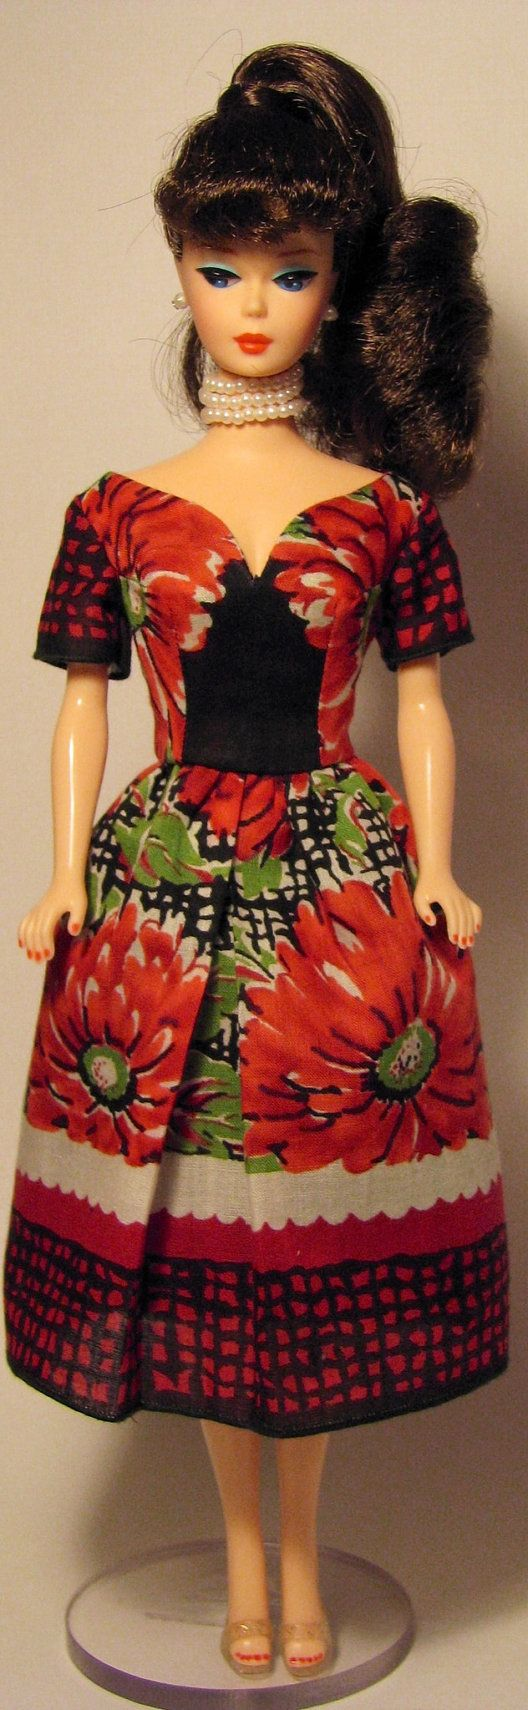 Red and black tea length dress for vintage Barbie by HankieChic on Etsy now